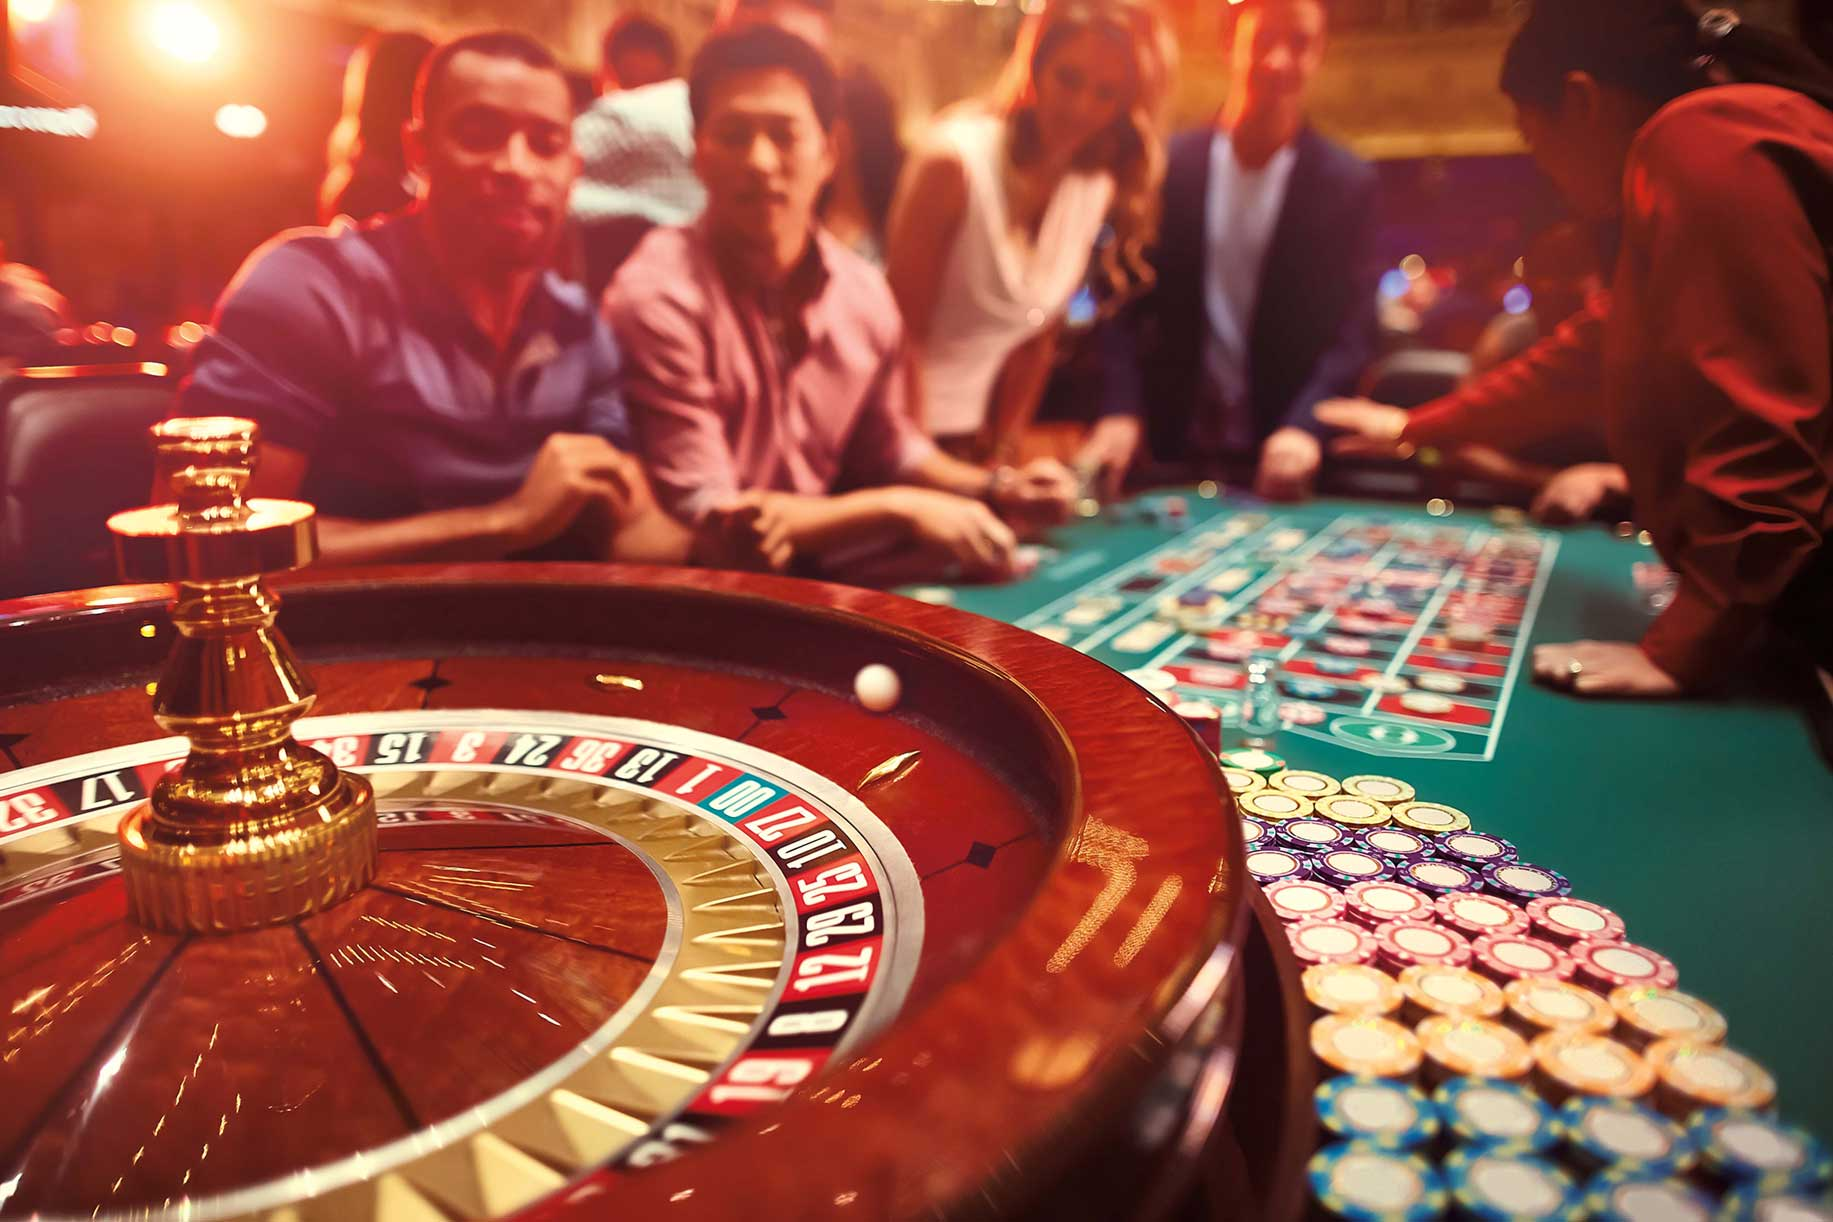 Live Online Casino Game - How to Become a Professional Gambler?